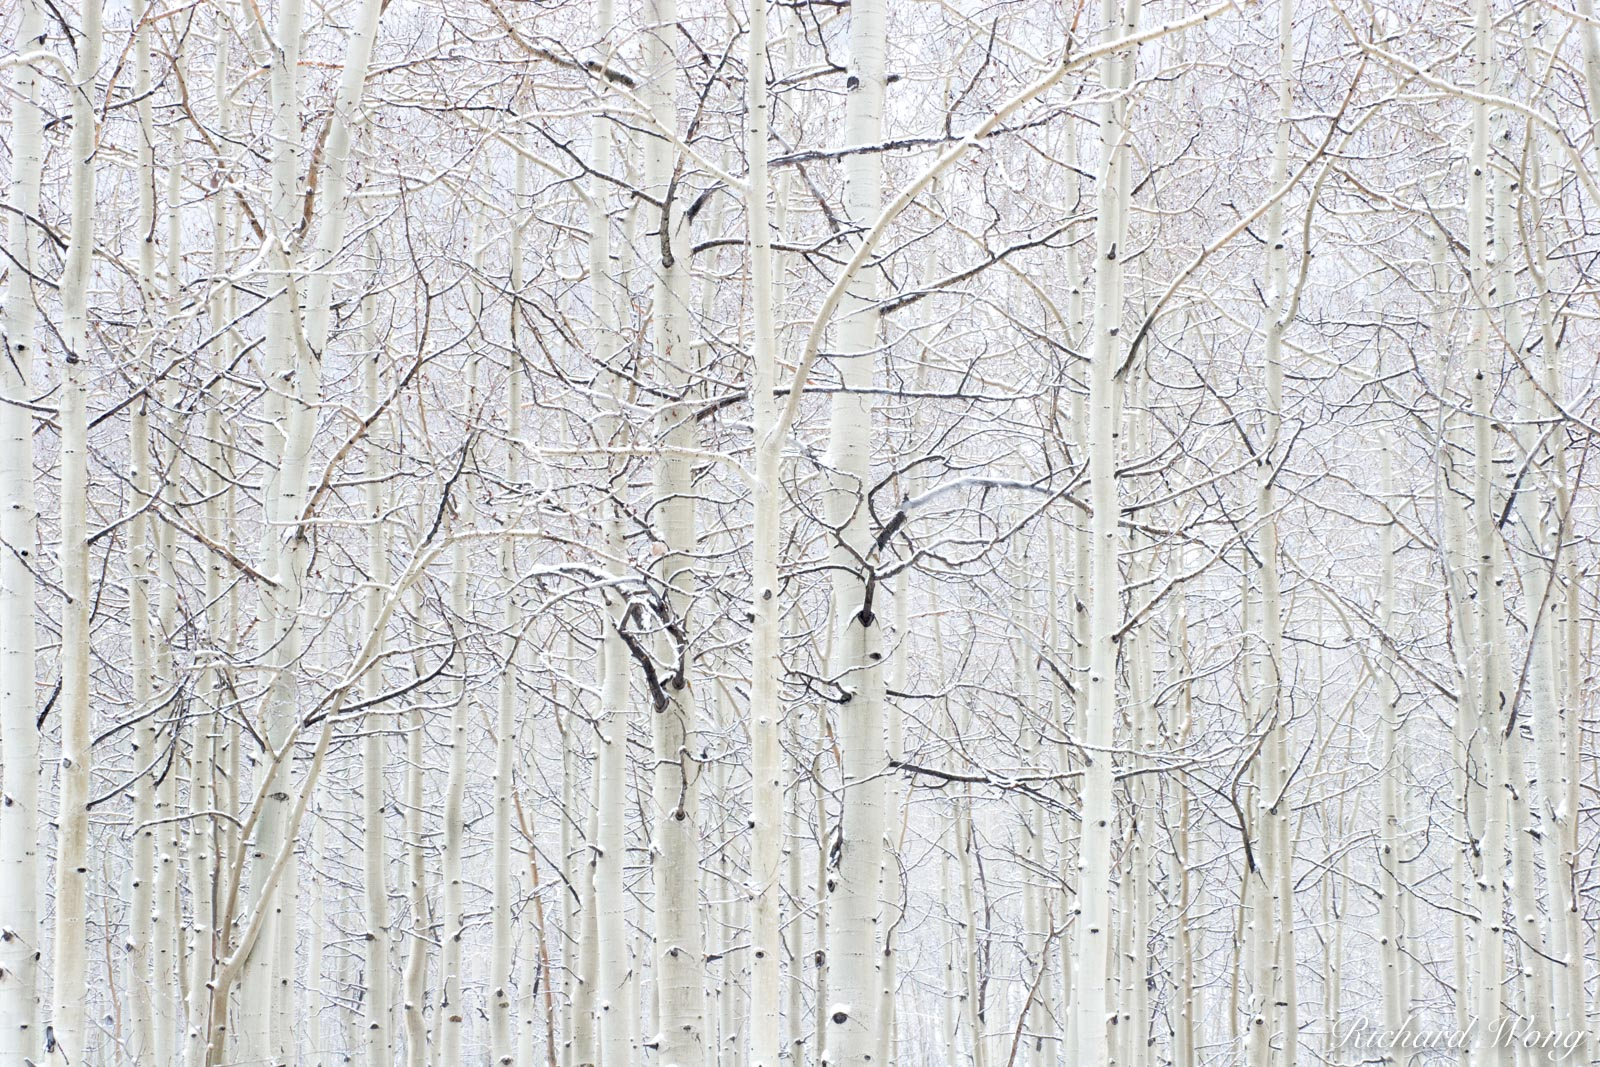 Aspen Trees in Snowstorm near Maroon Bells, White River National Forest, Colorado, photo, photo